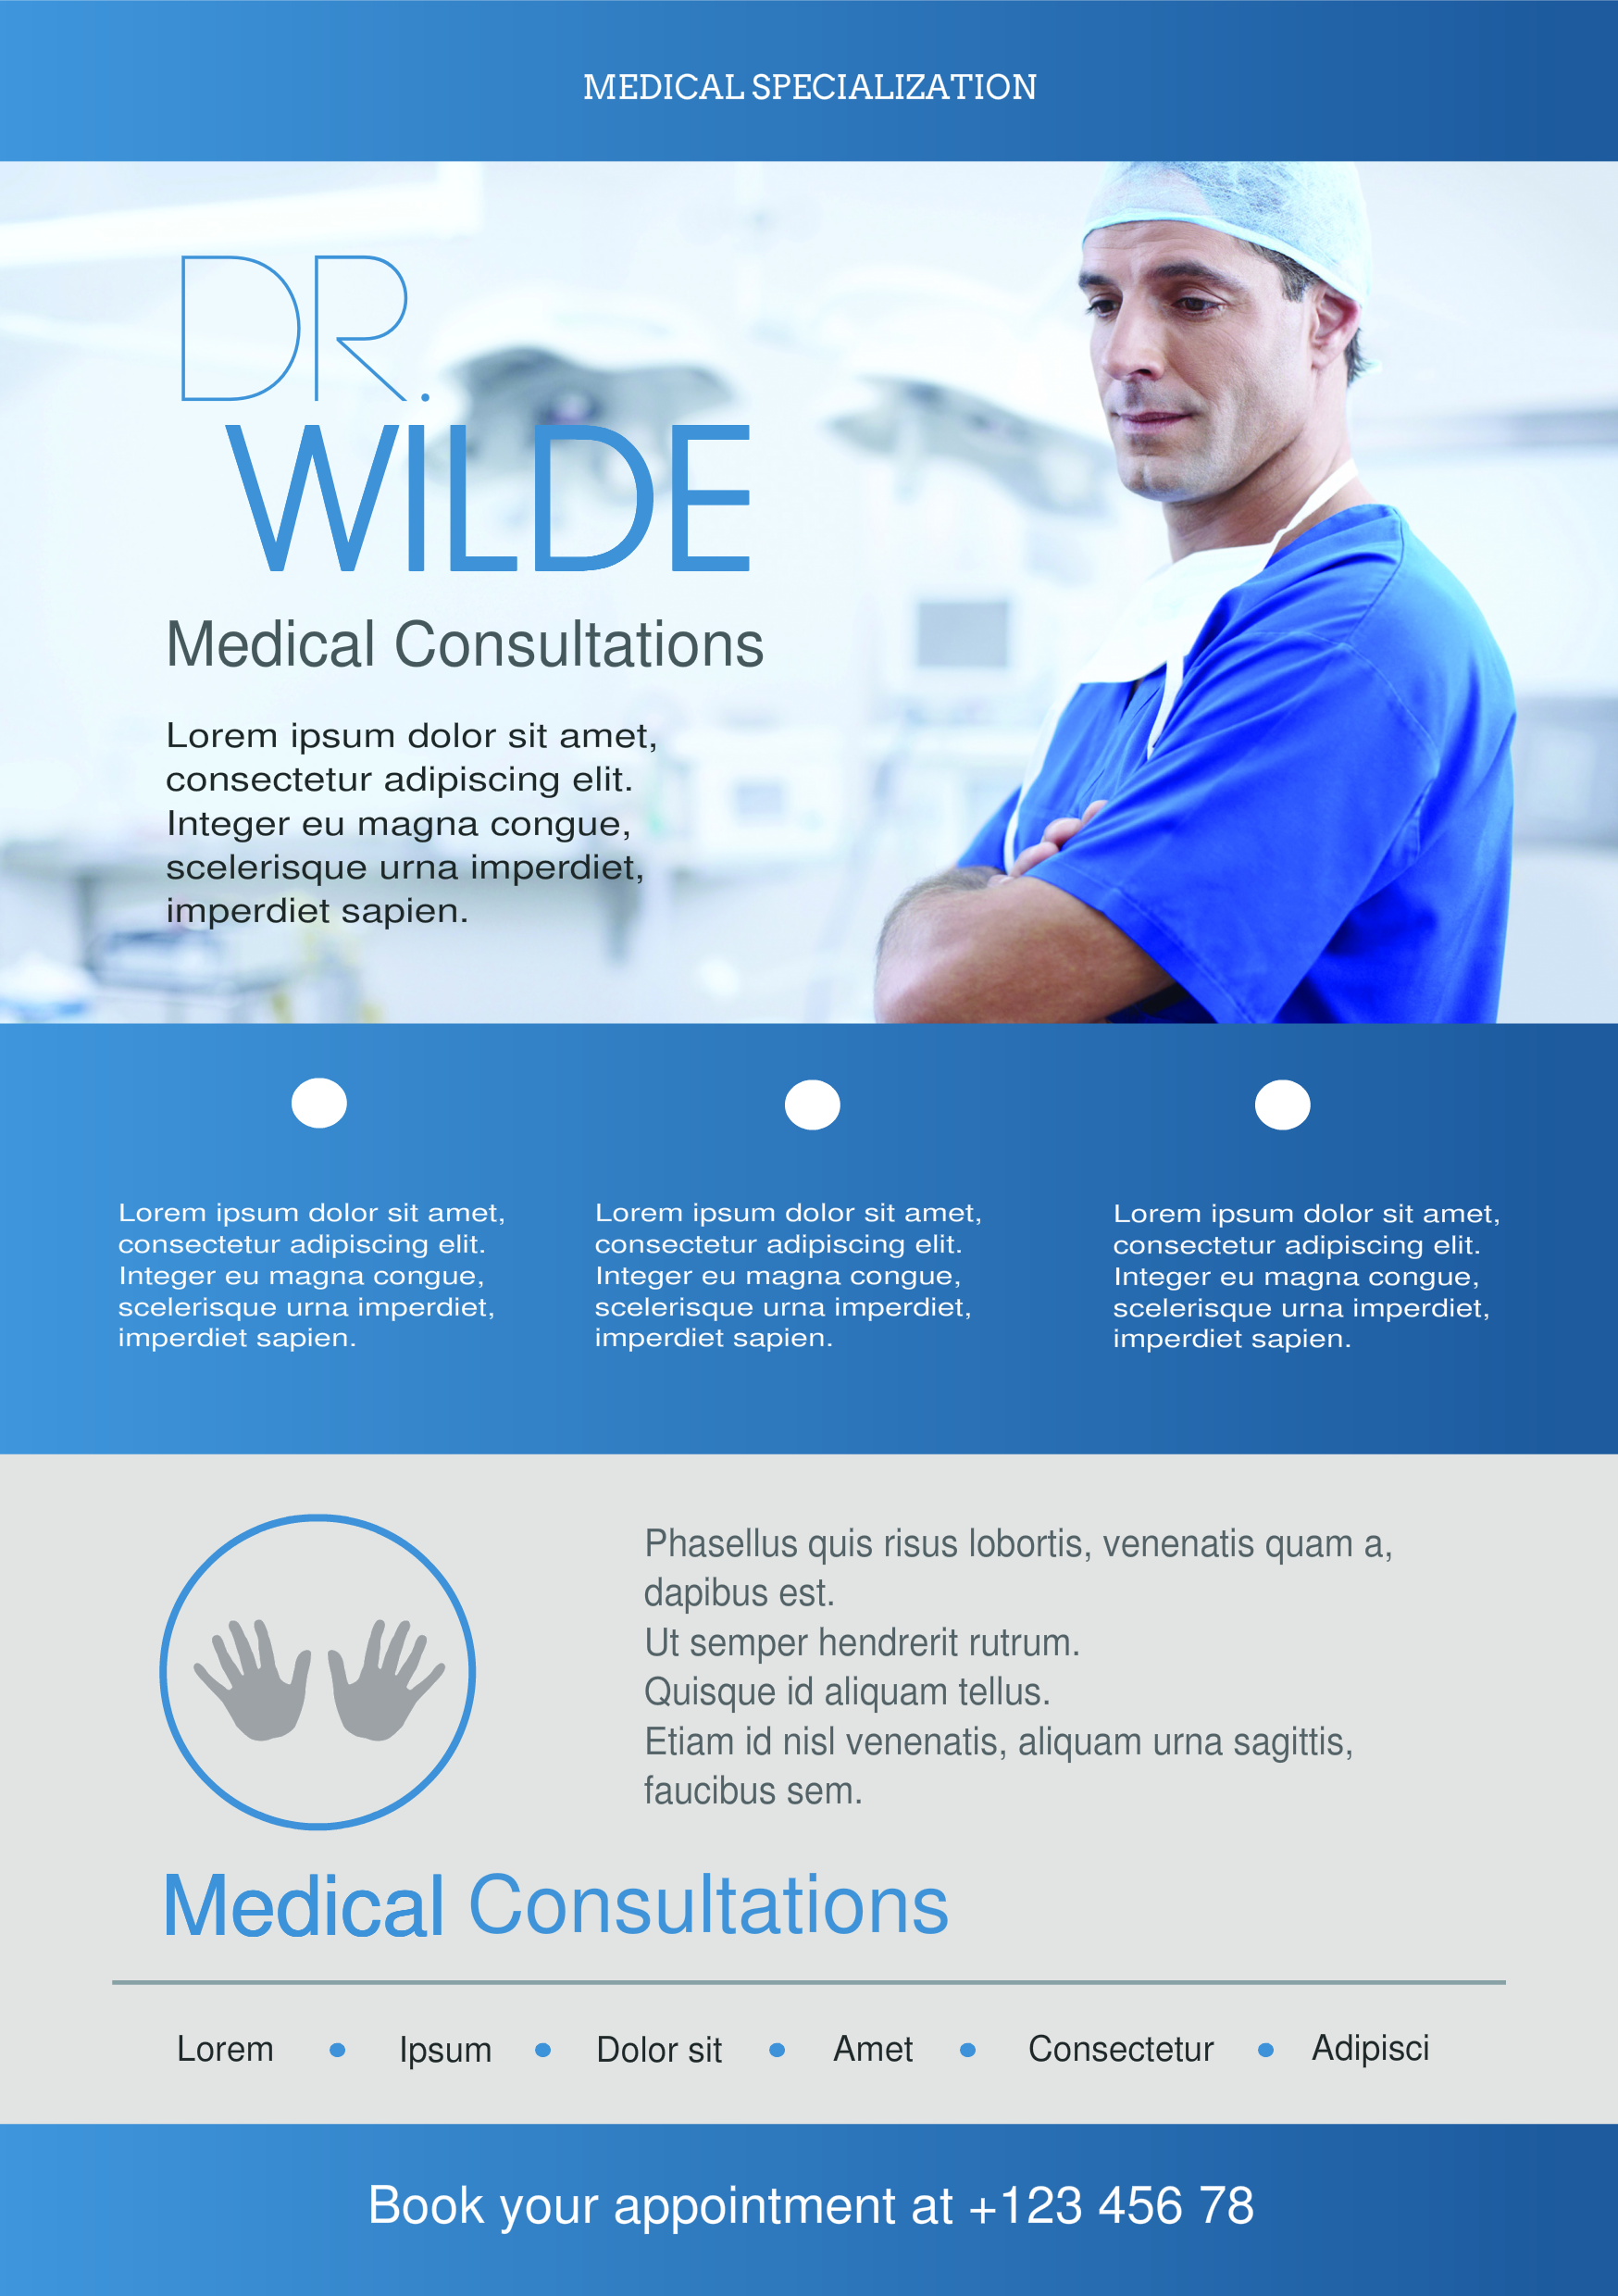 Medical Services A Promotional Flyer HttpPremadevideosComA